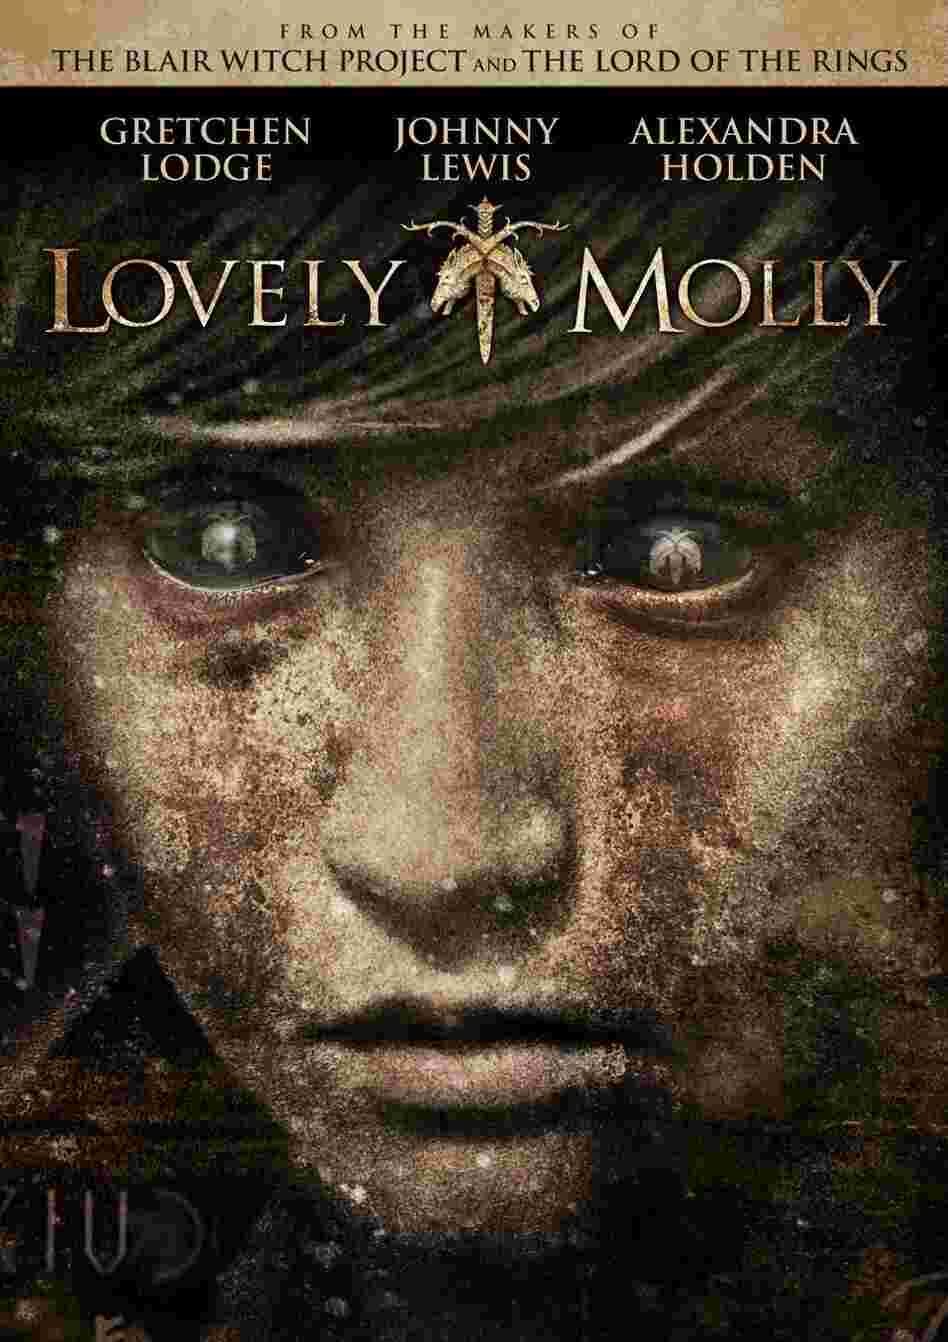 The cover of Lovely Molly